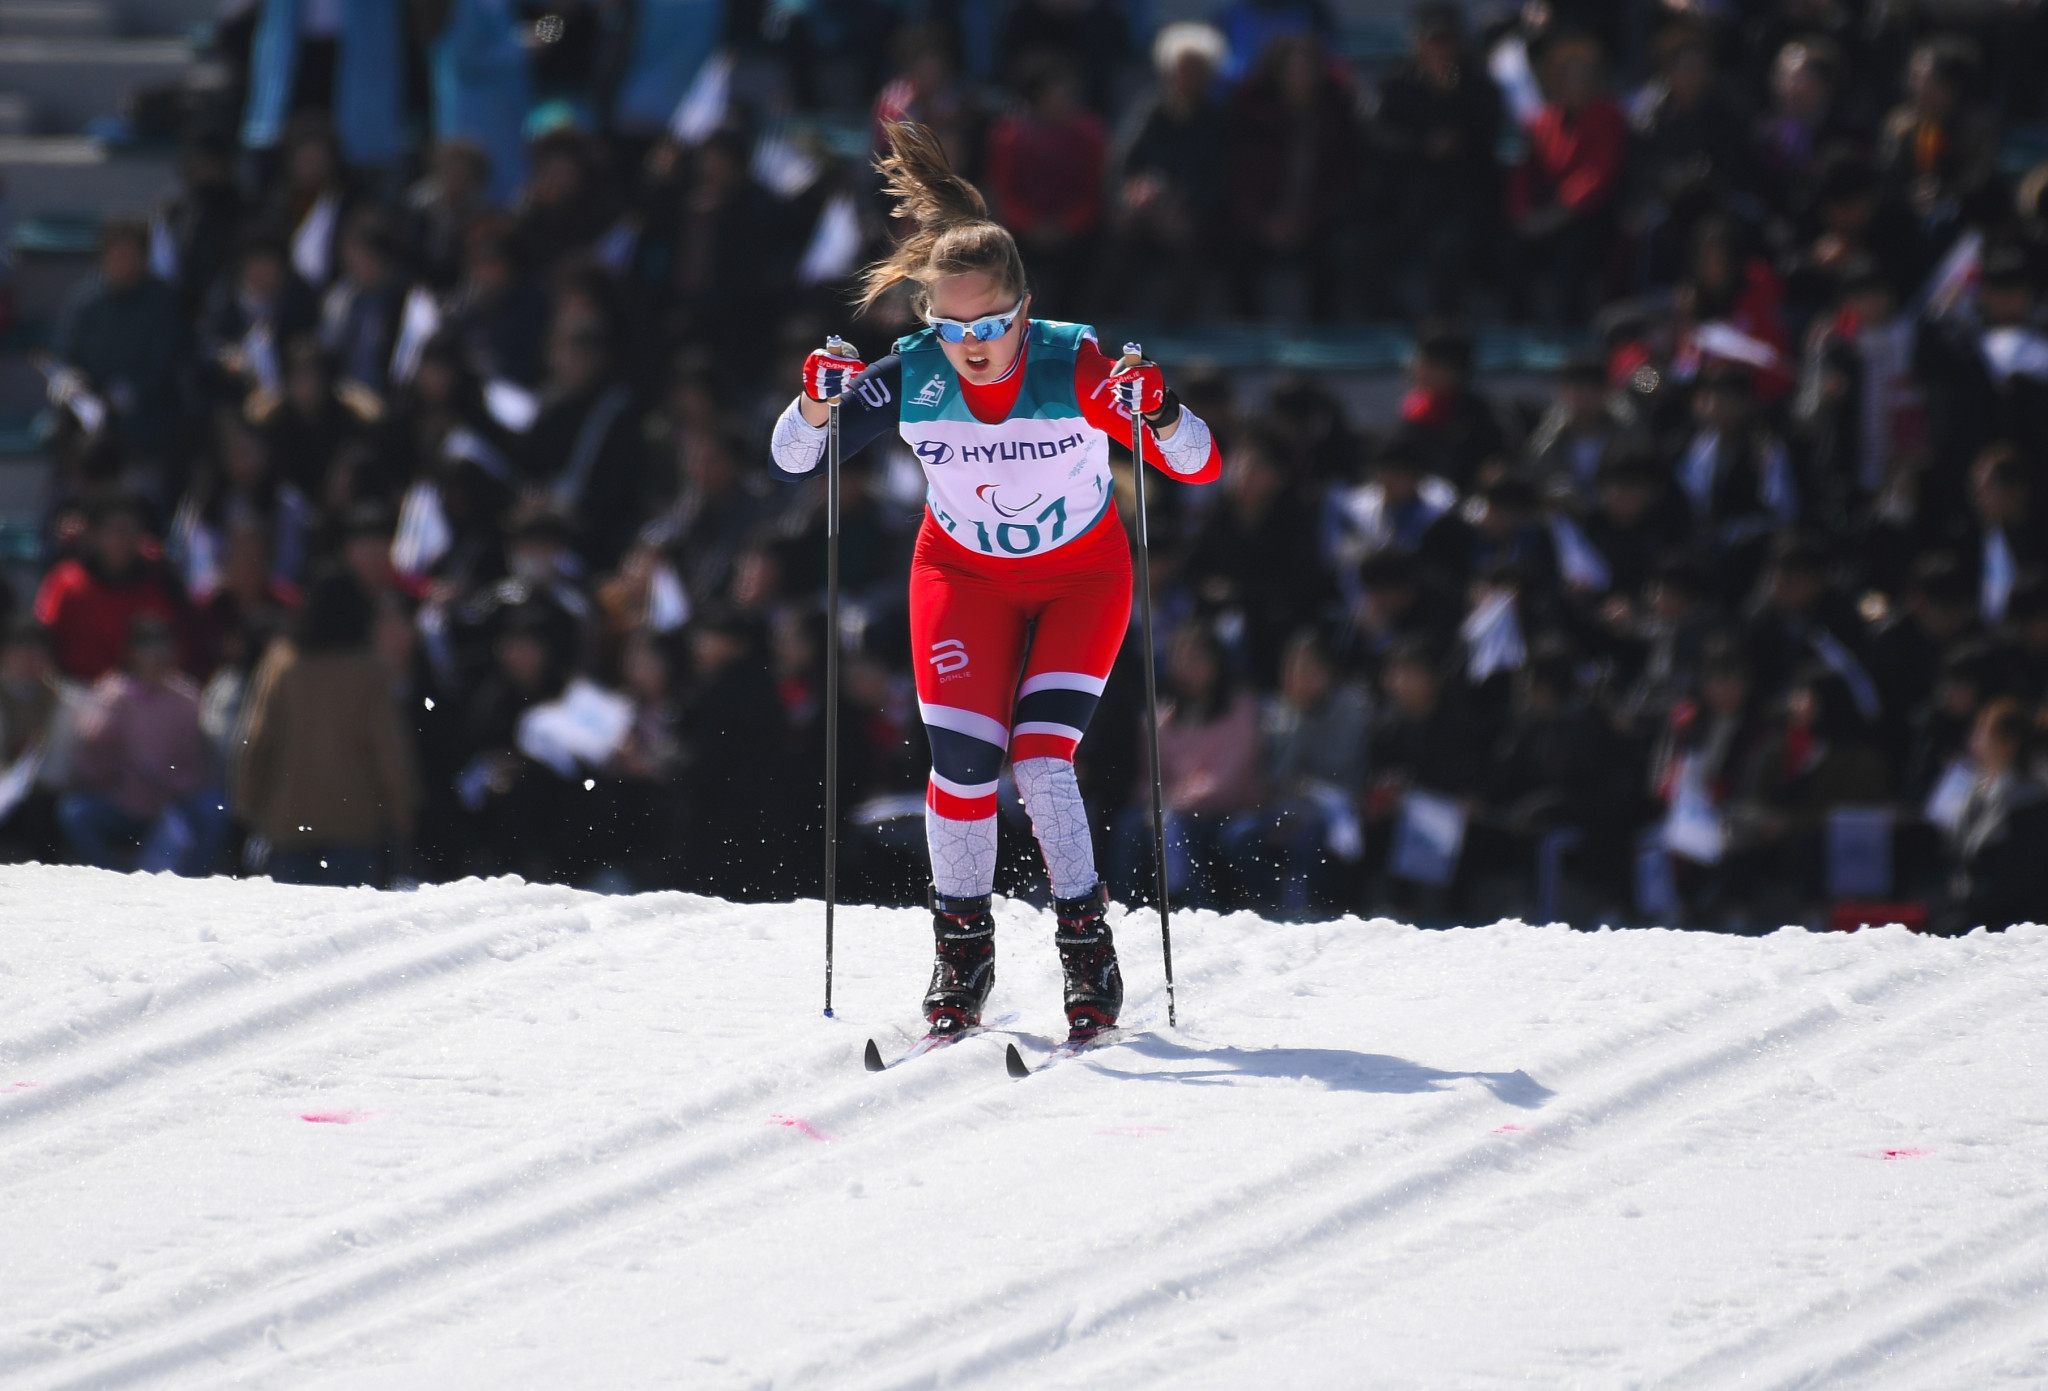 Norway's Vilde Nilsen took the women's standing cross-country title after triumphing in today's middle-distance race at the World Para Nordic Skiing World Cup in Sapporo ©Getty Images